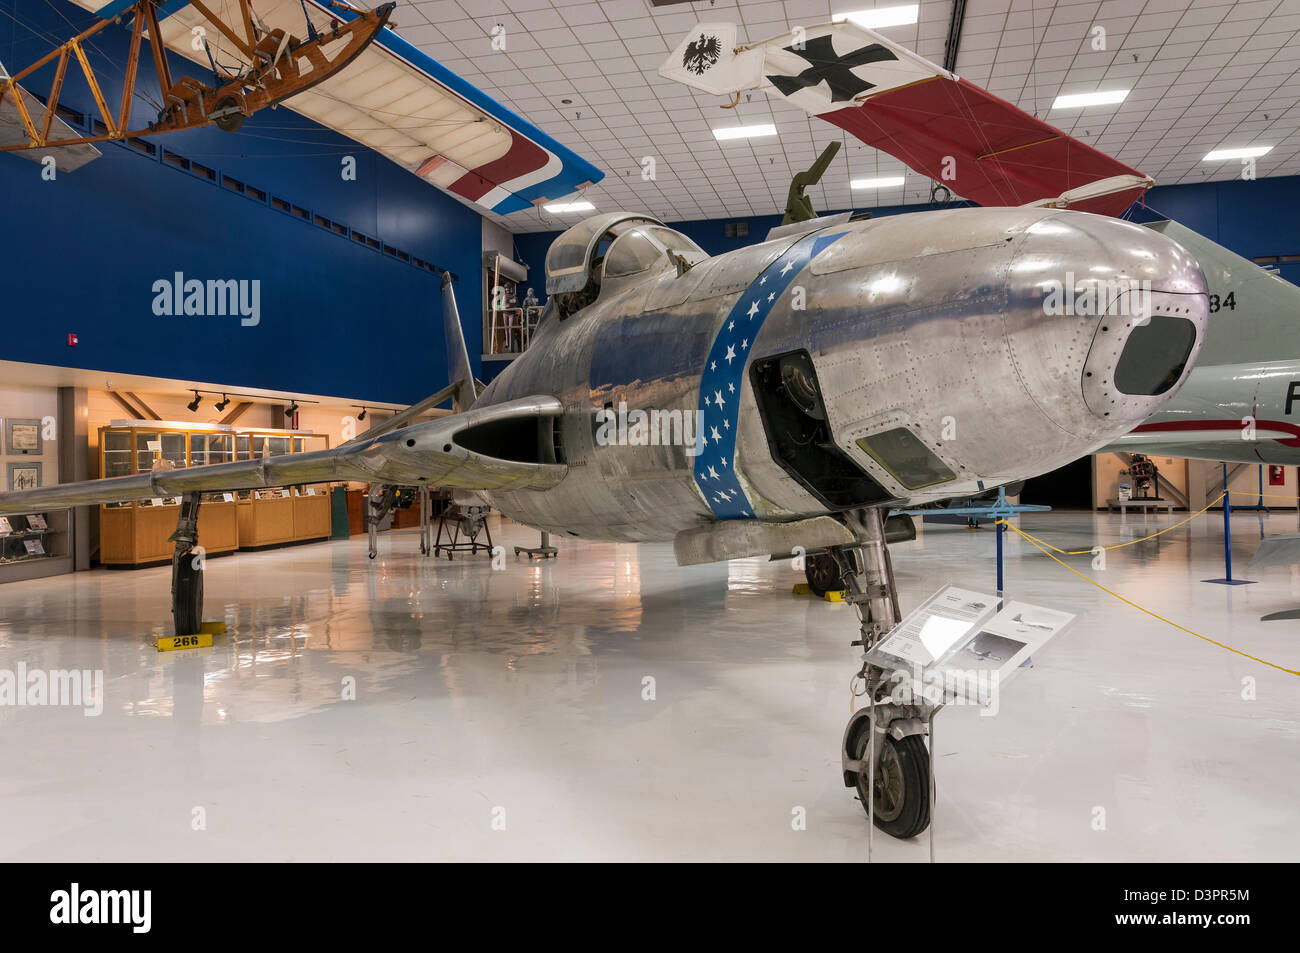 Republic RF-84K Thunderflash, Wings over the Rockies Air and Space Museum, Denver, Colorado. - Stock Image